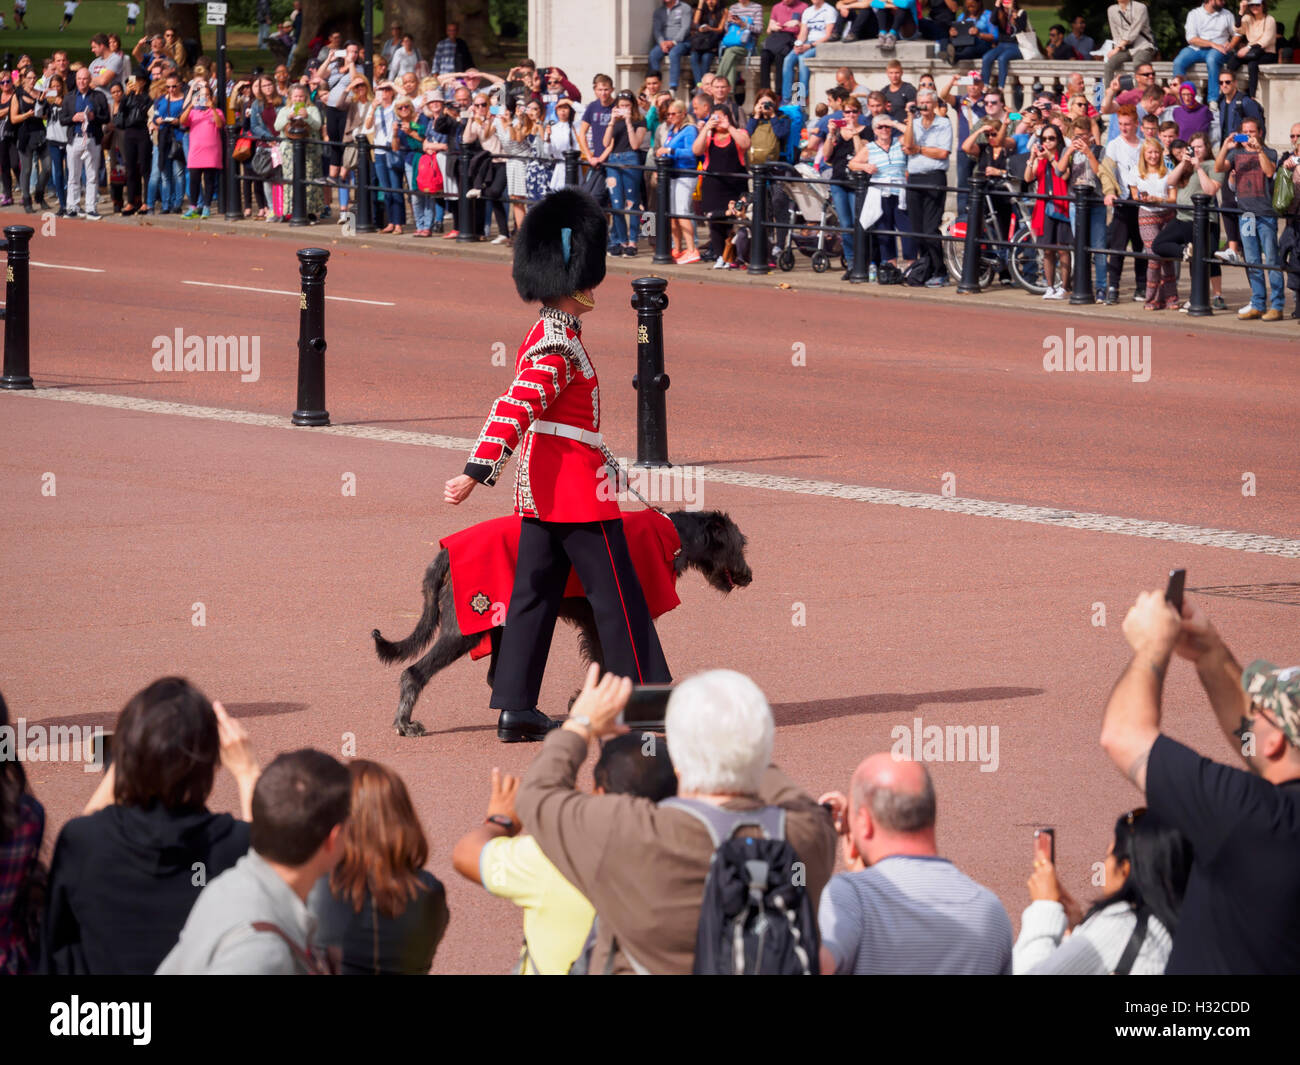 The Irish Wolfhound mascot of the Irish Guards leads the 1st Battalion at the Changing of the Guard. Stock Photo